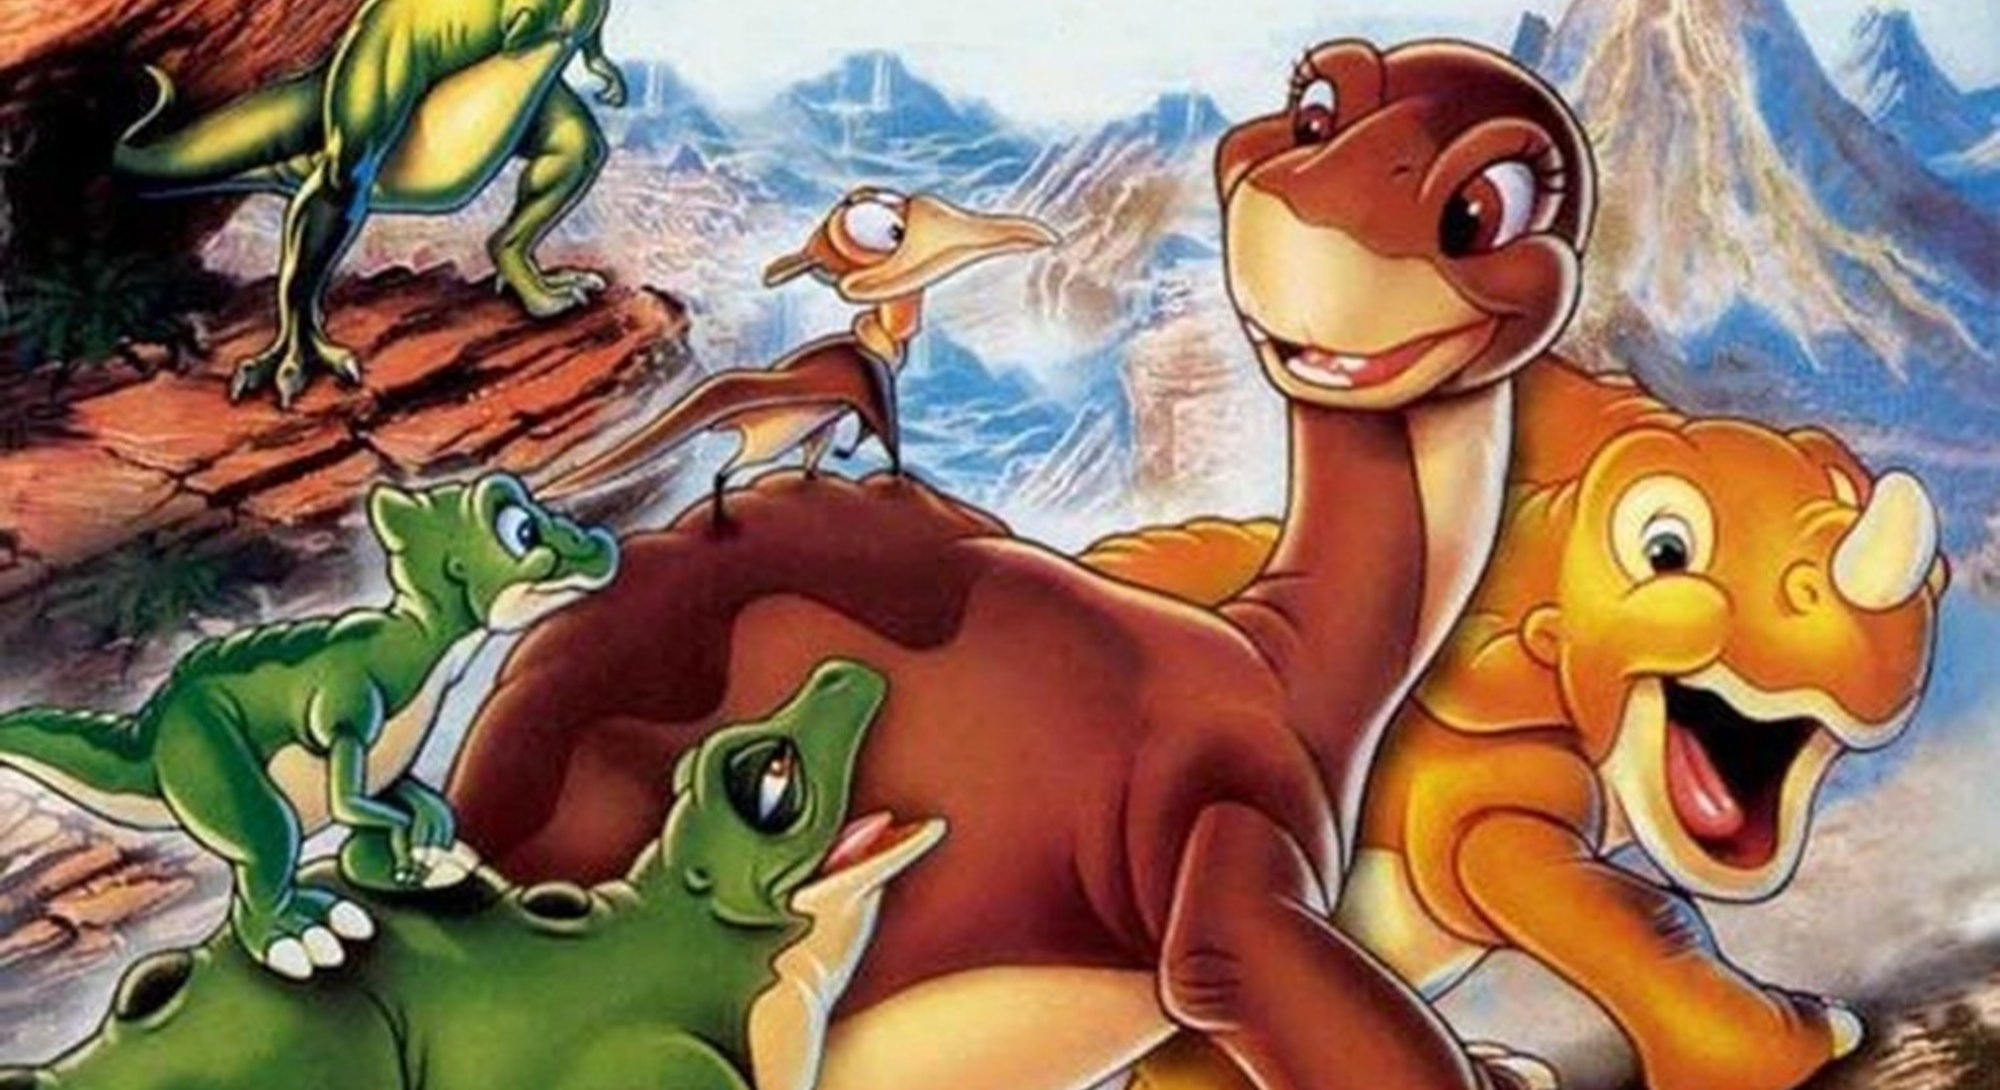 The Land Before Time - A Touching Animated Classic